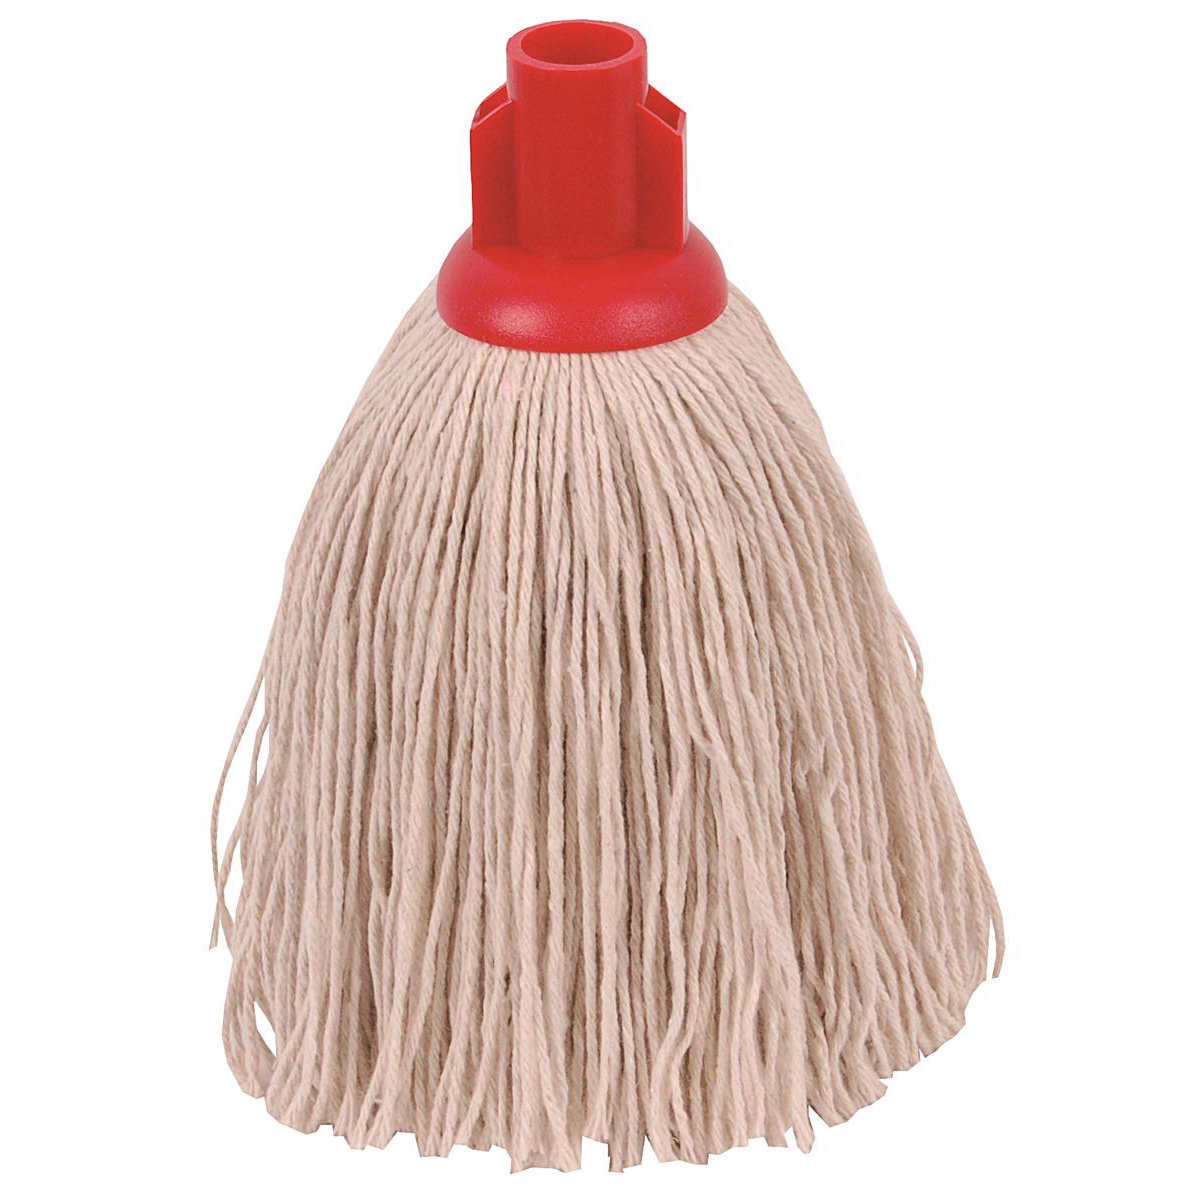 Robert Scott & Sons Twine Socket Mop for Rough Surfaces 12oz Red Ref 101852RED [Pack 10]